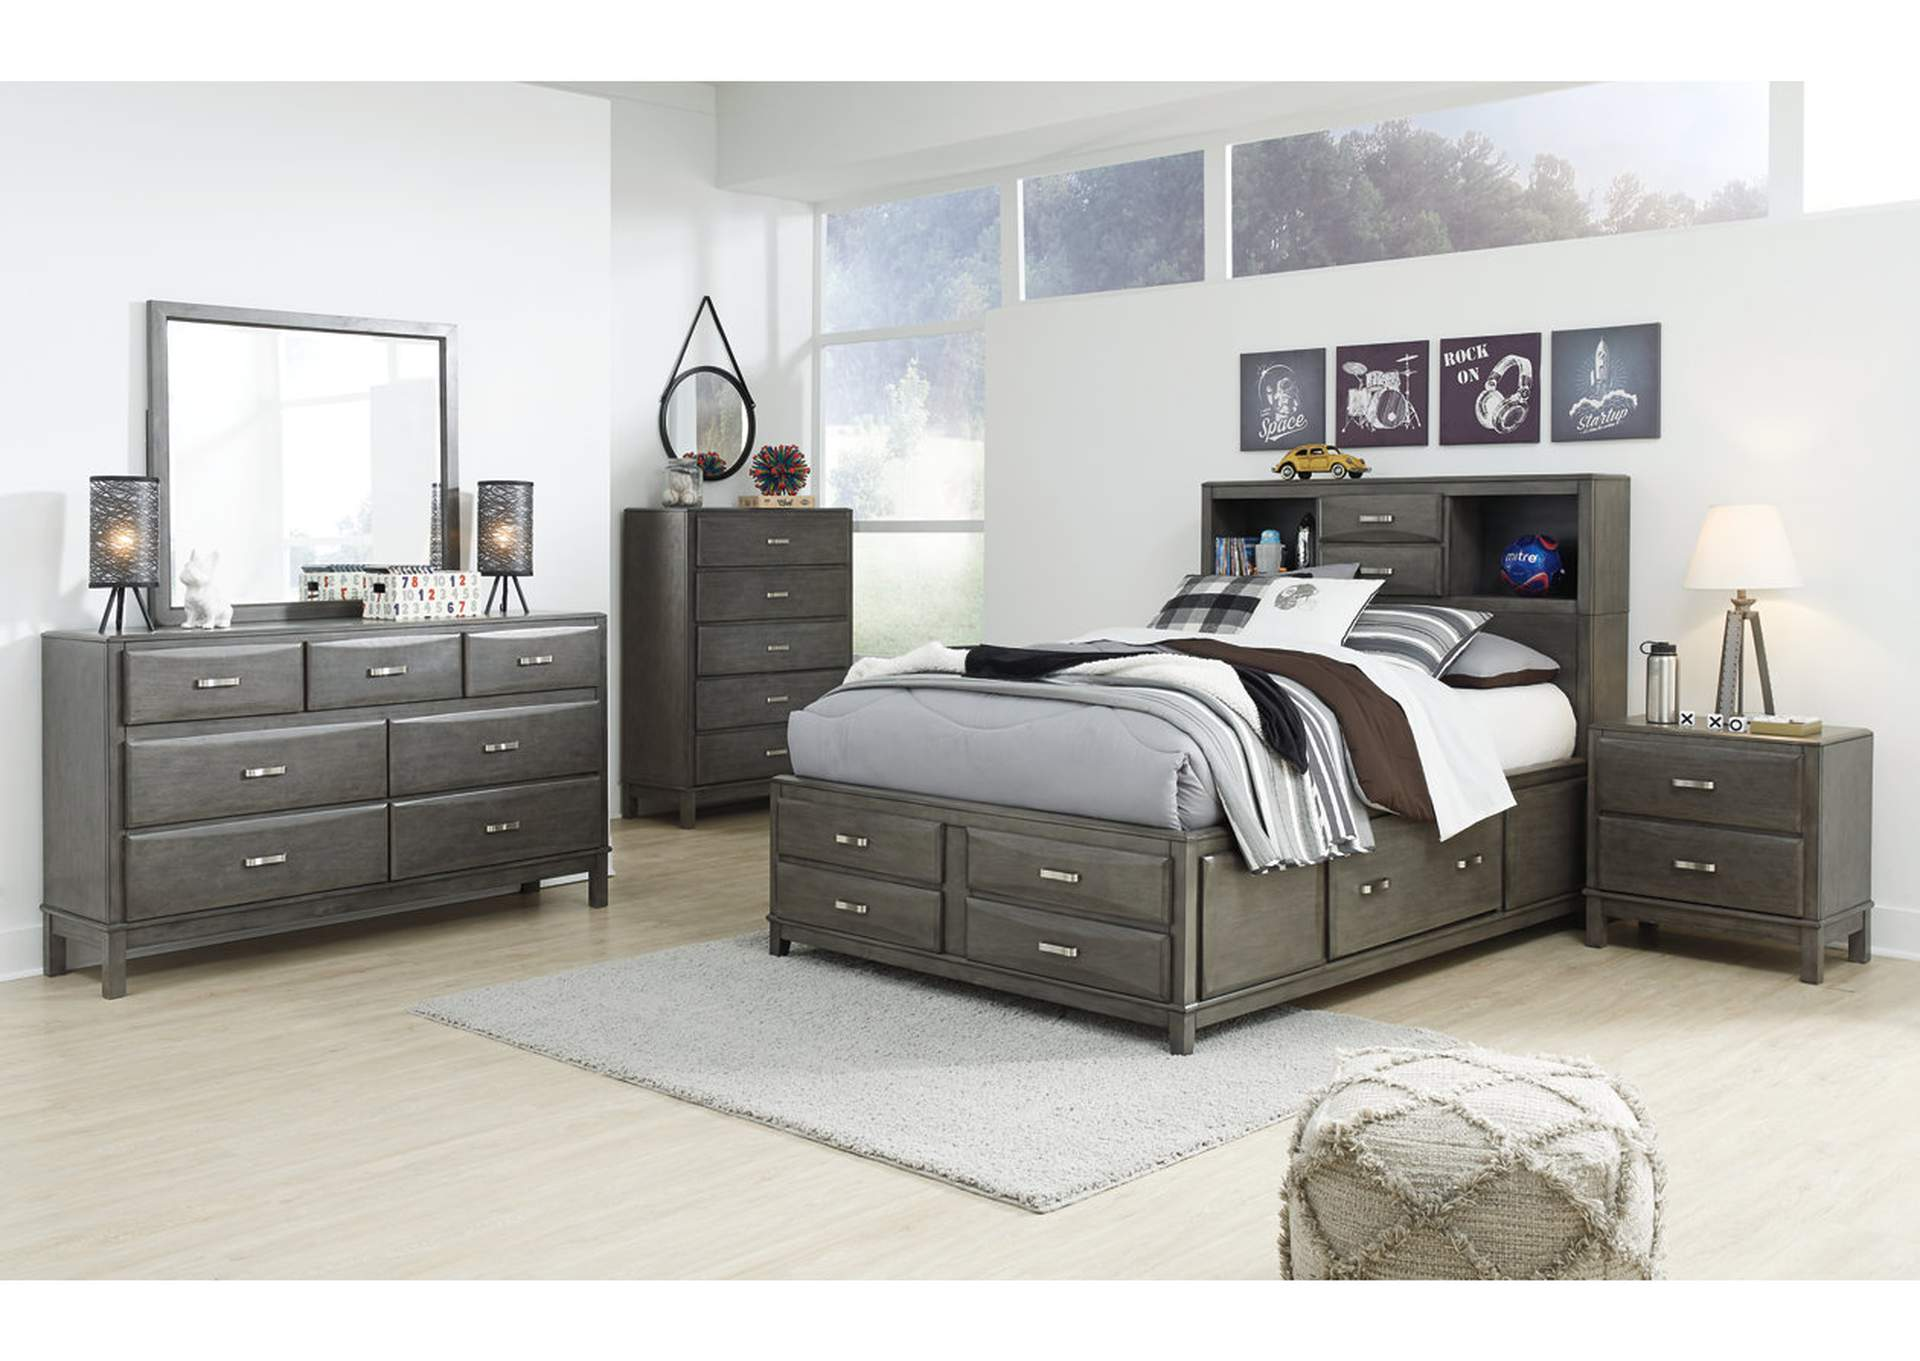 Caitbrook Full Storage Bed w/Dresser and Mirror,Signature Design By Ashley